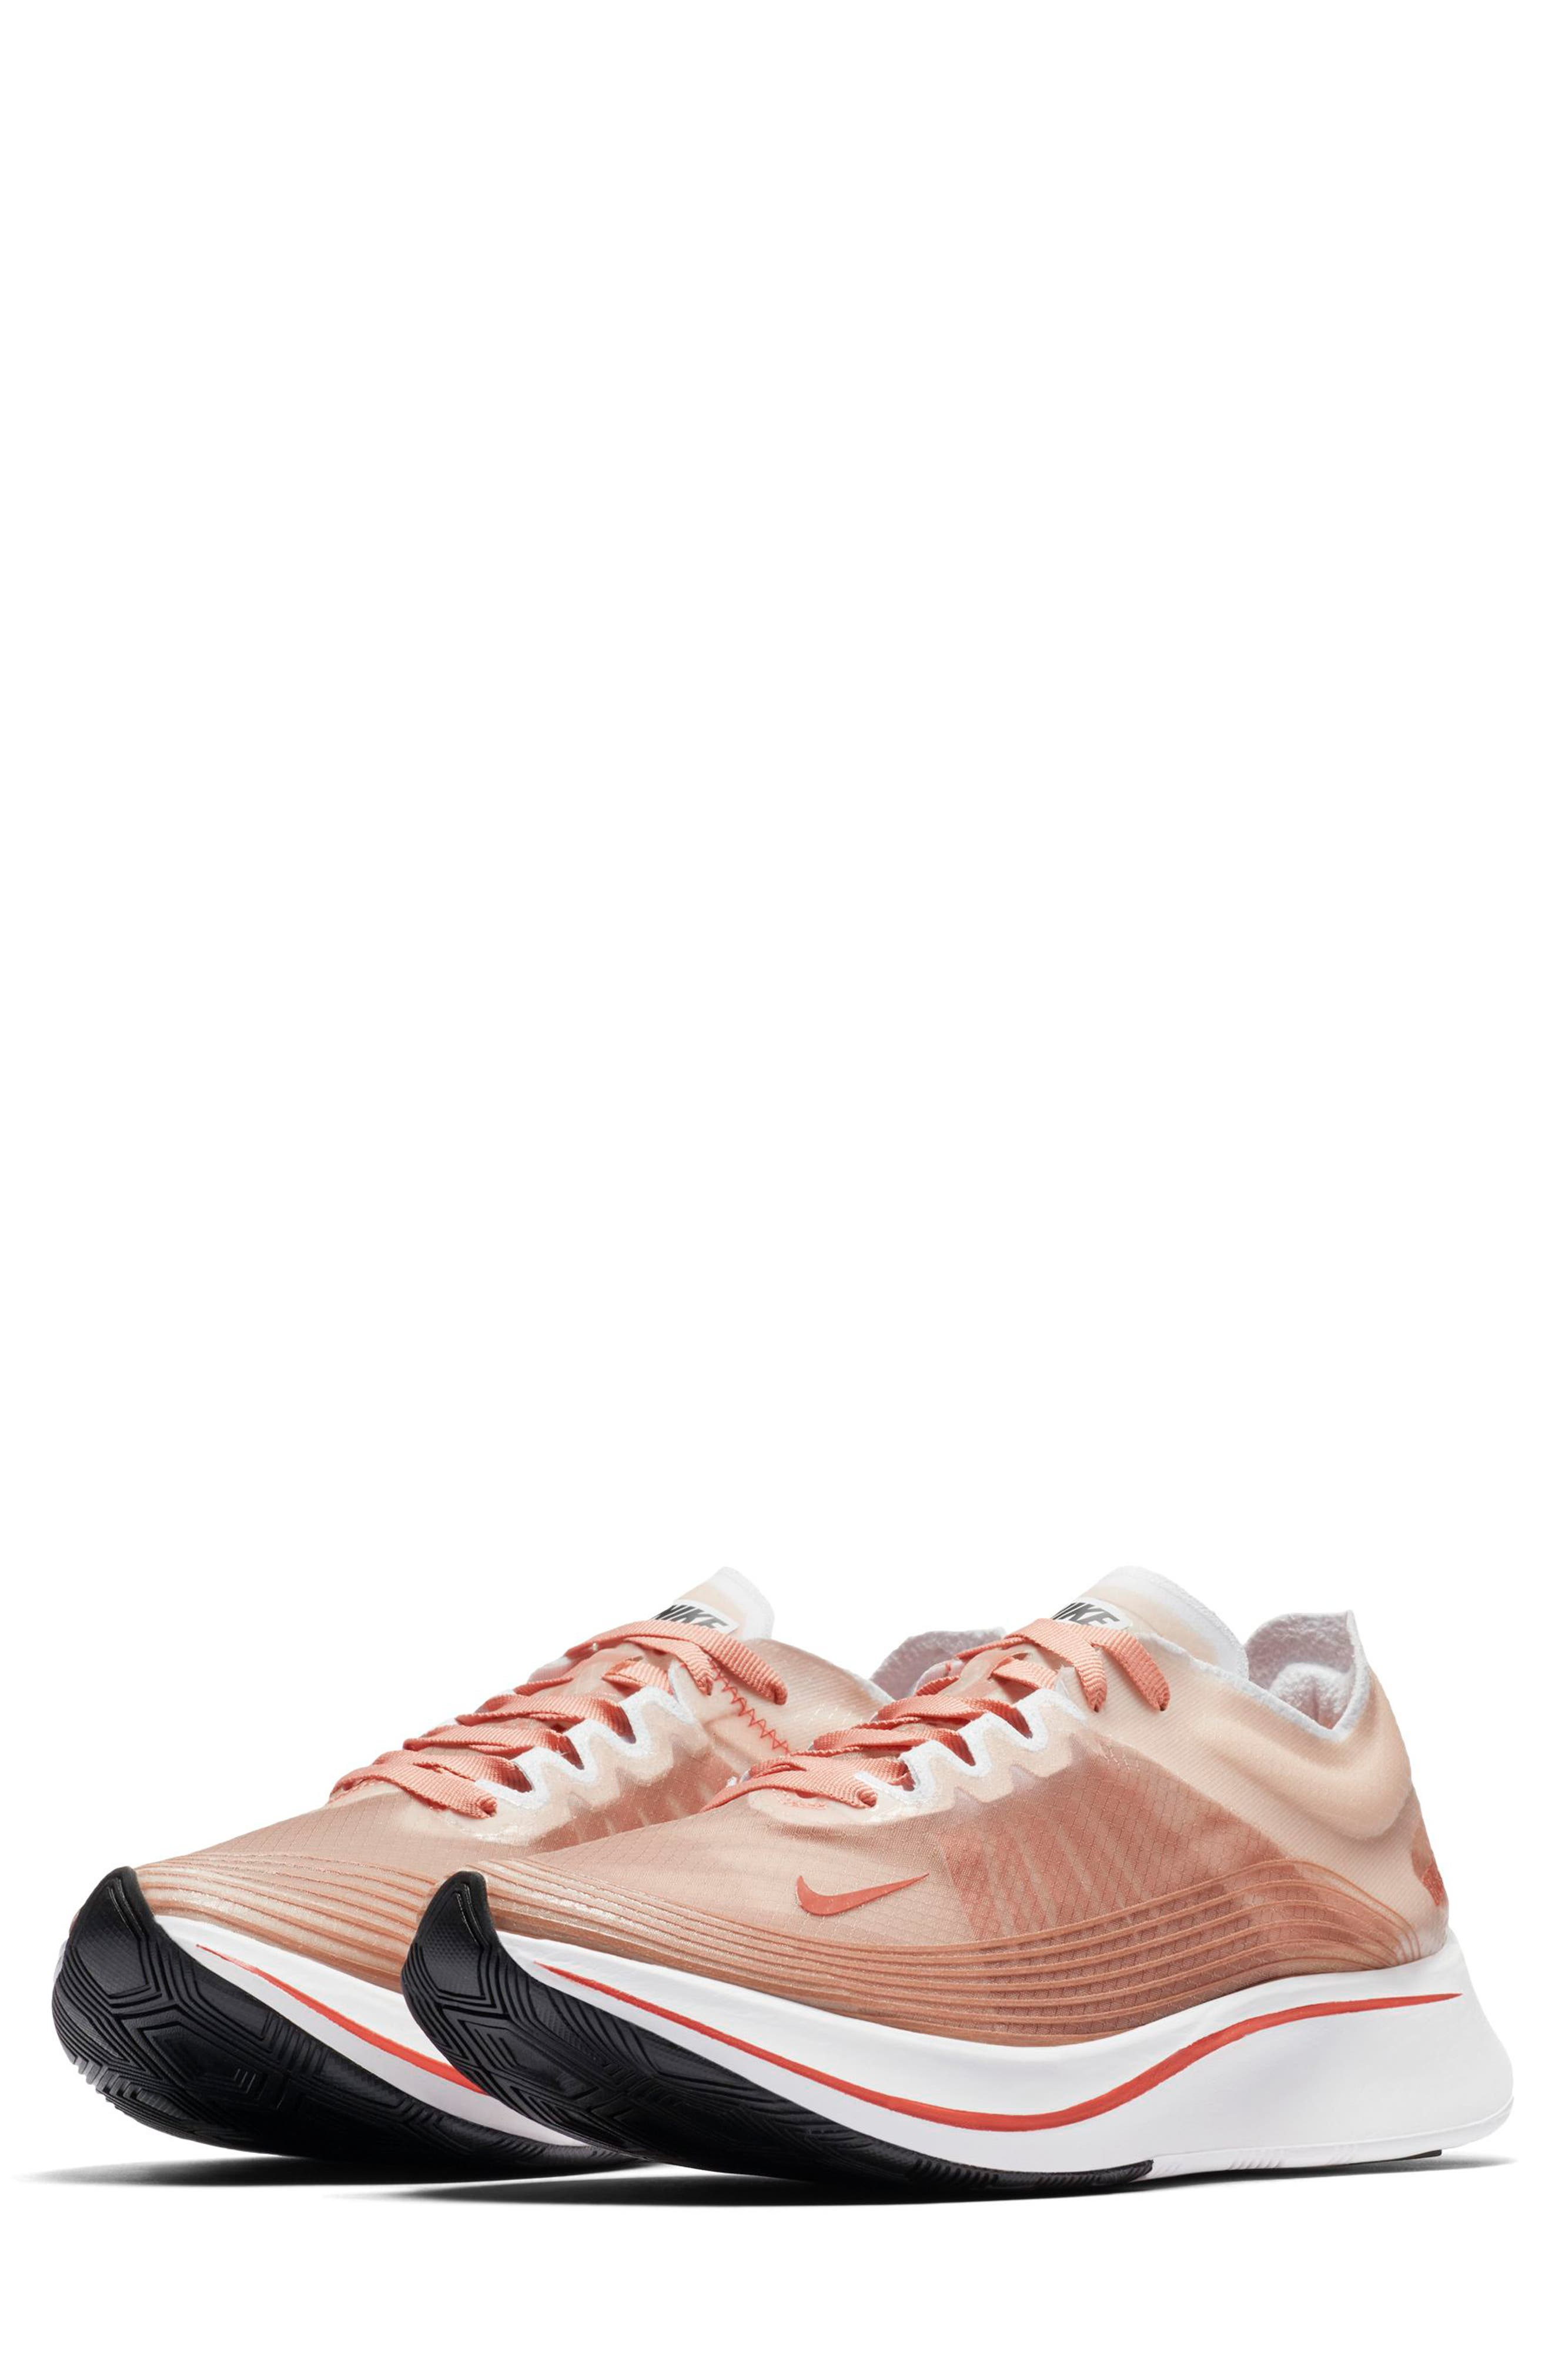 WOMEN'S ZOOM FLY SP RUNNING SHOES, PINK